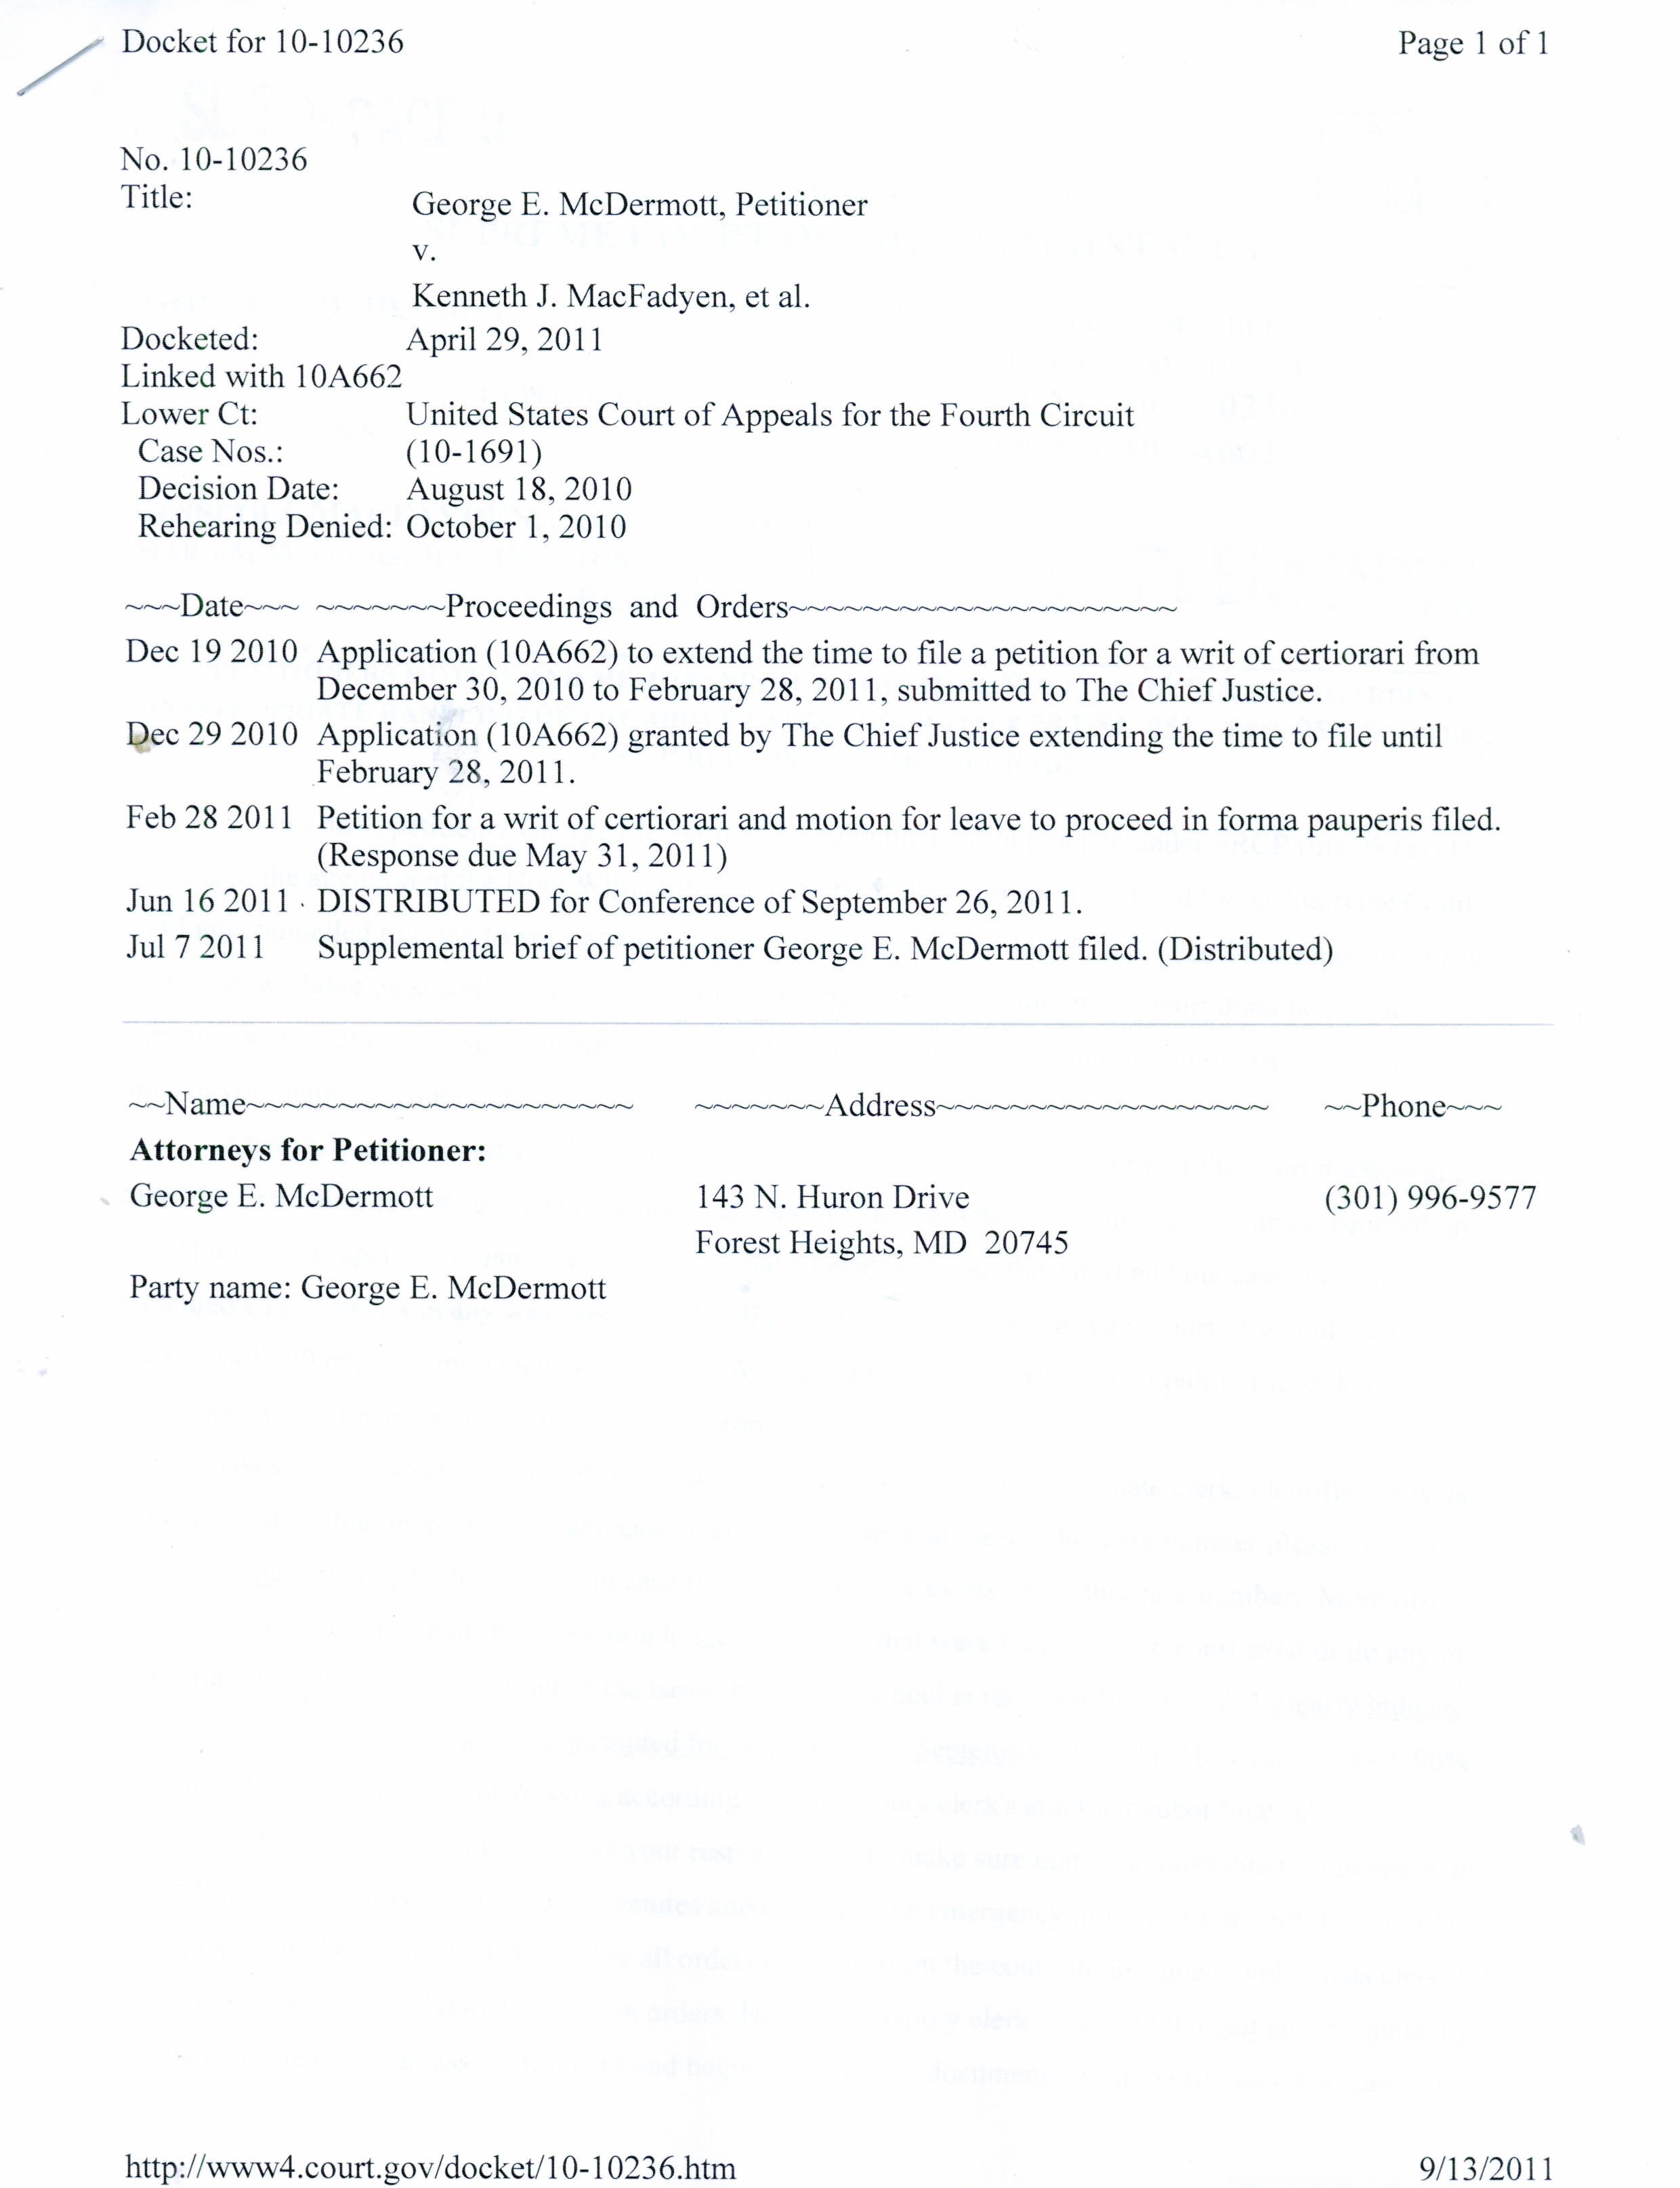 Lawyer Probate Job Application Letter Application Letter For Job